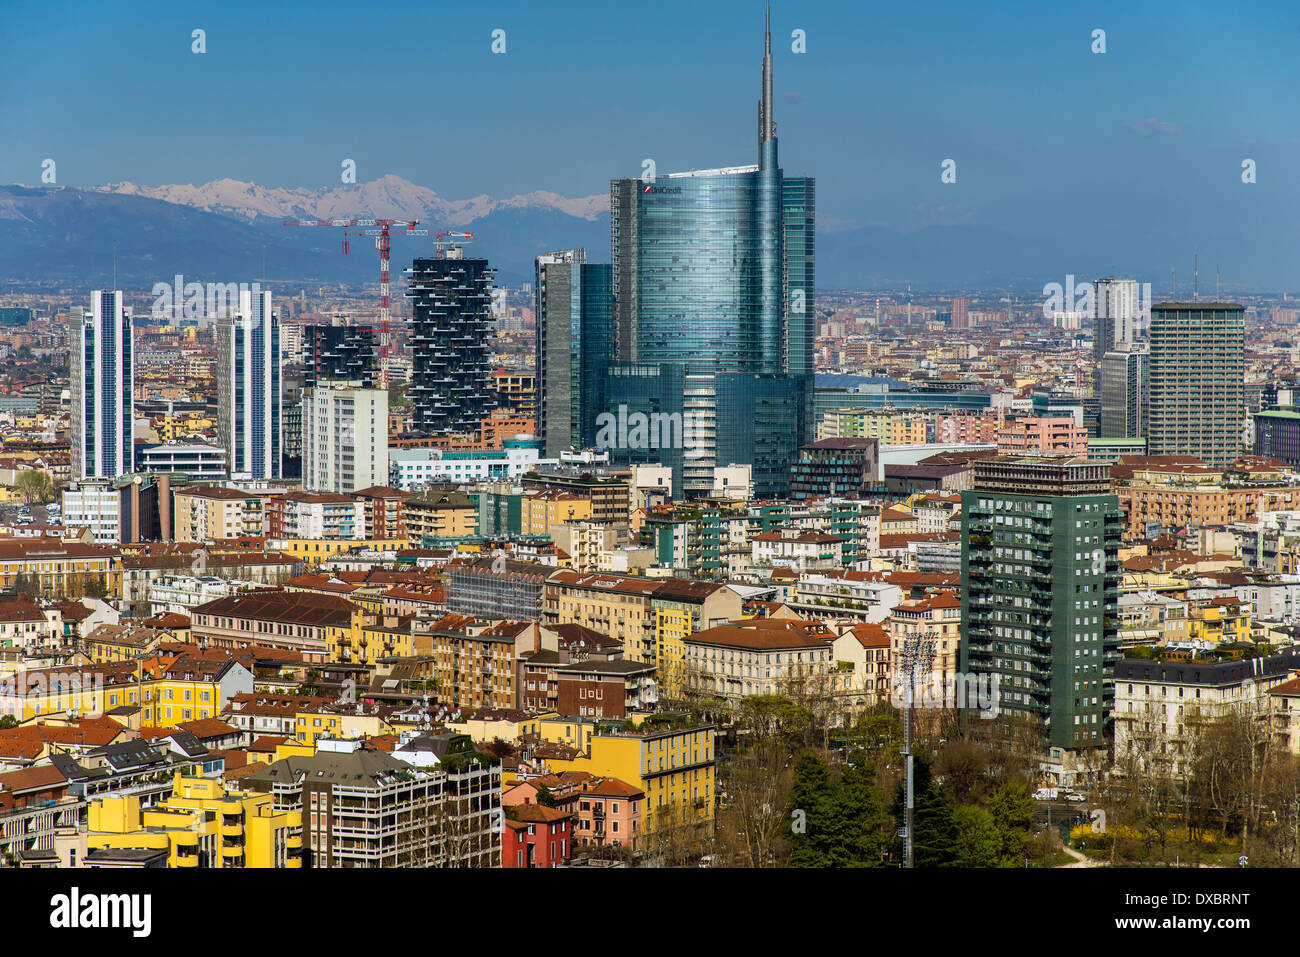 City skyline with Porta Nuova business district and the Alps behind, Milan, Lombardy, Italy - Stock Image